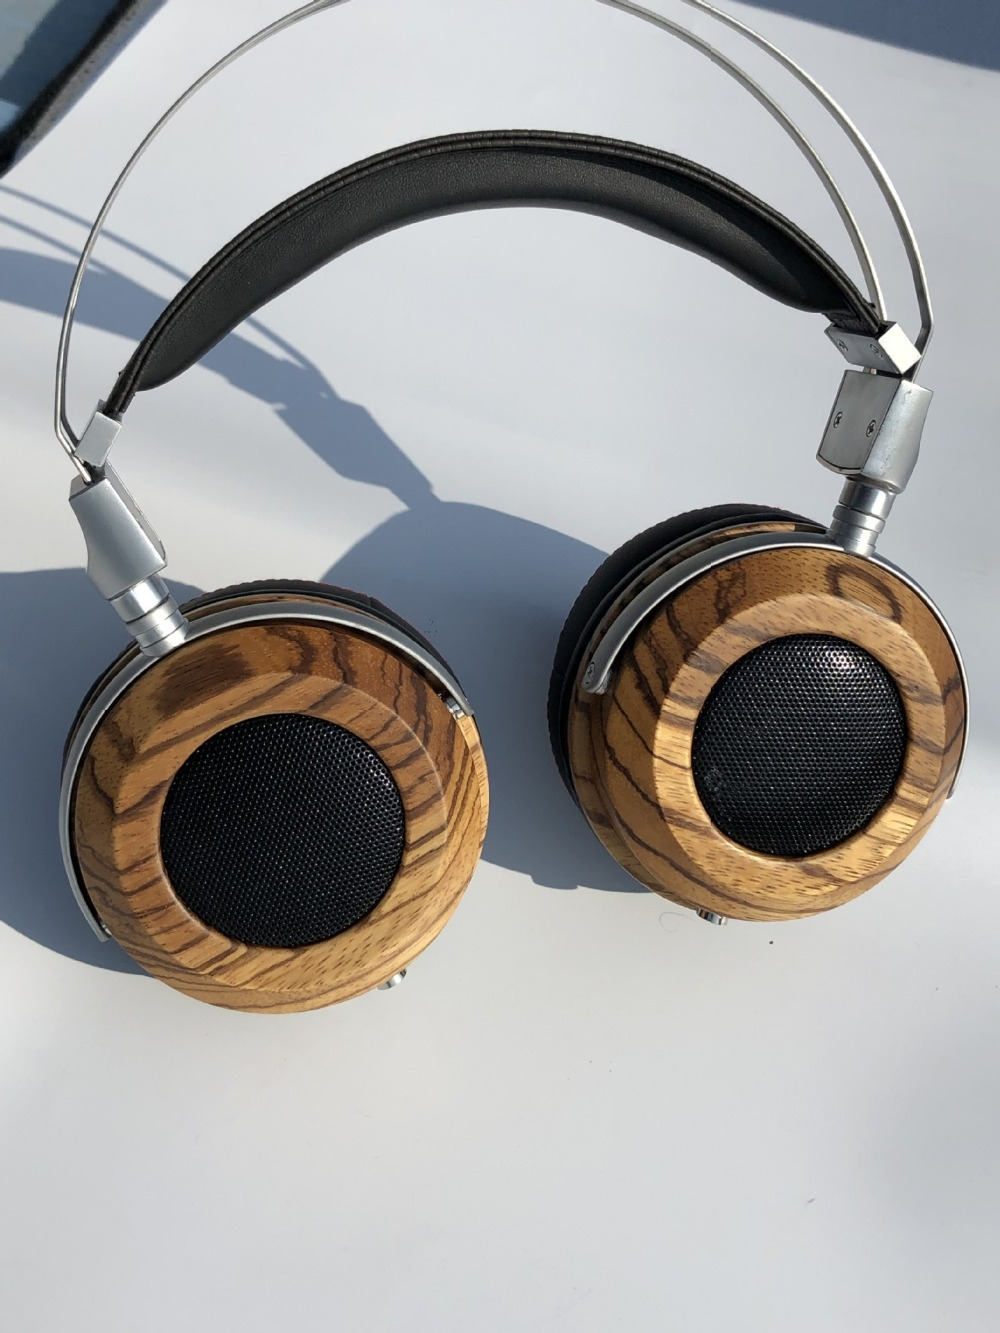 40mm 50MM 53mm headphone shell wooden shell 50mm headset shell without driver and cable